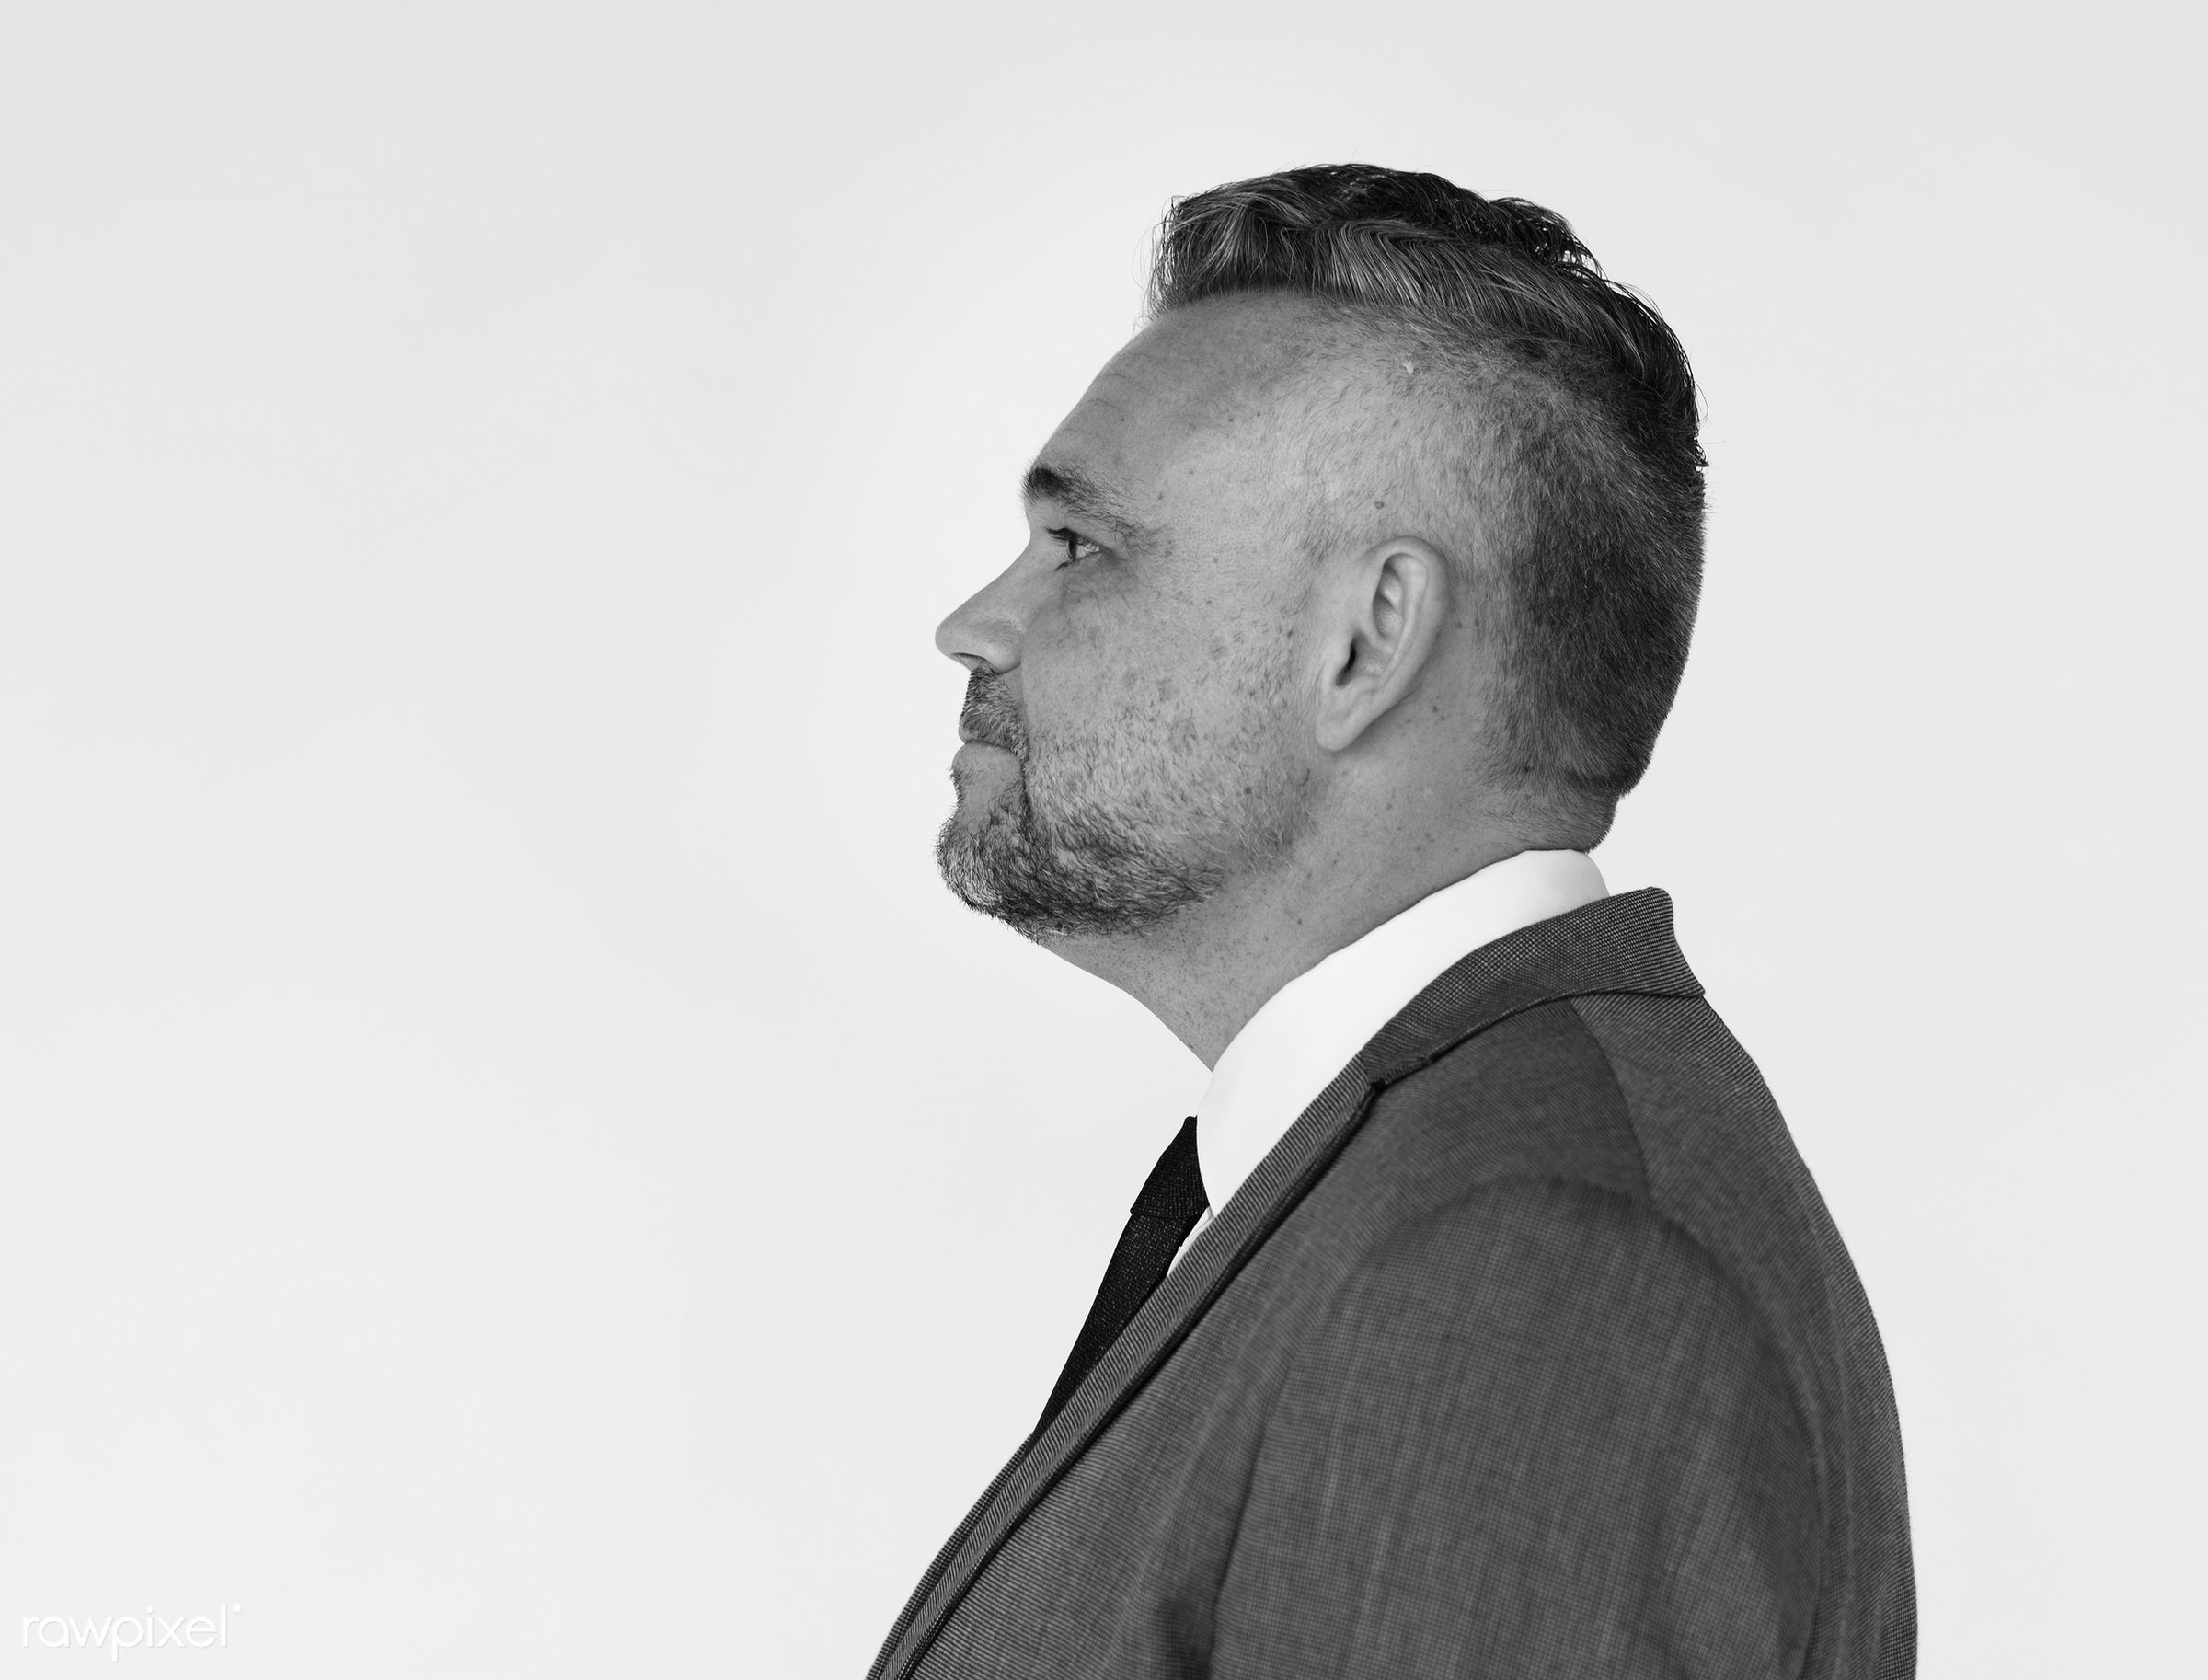 studio, expression, model, person, white collar worker, isolated on white, one, people, business, modern, businessman, style...